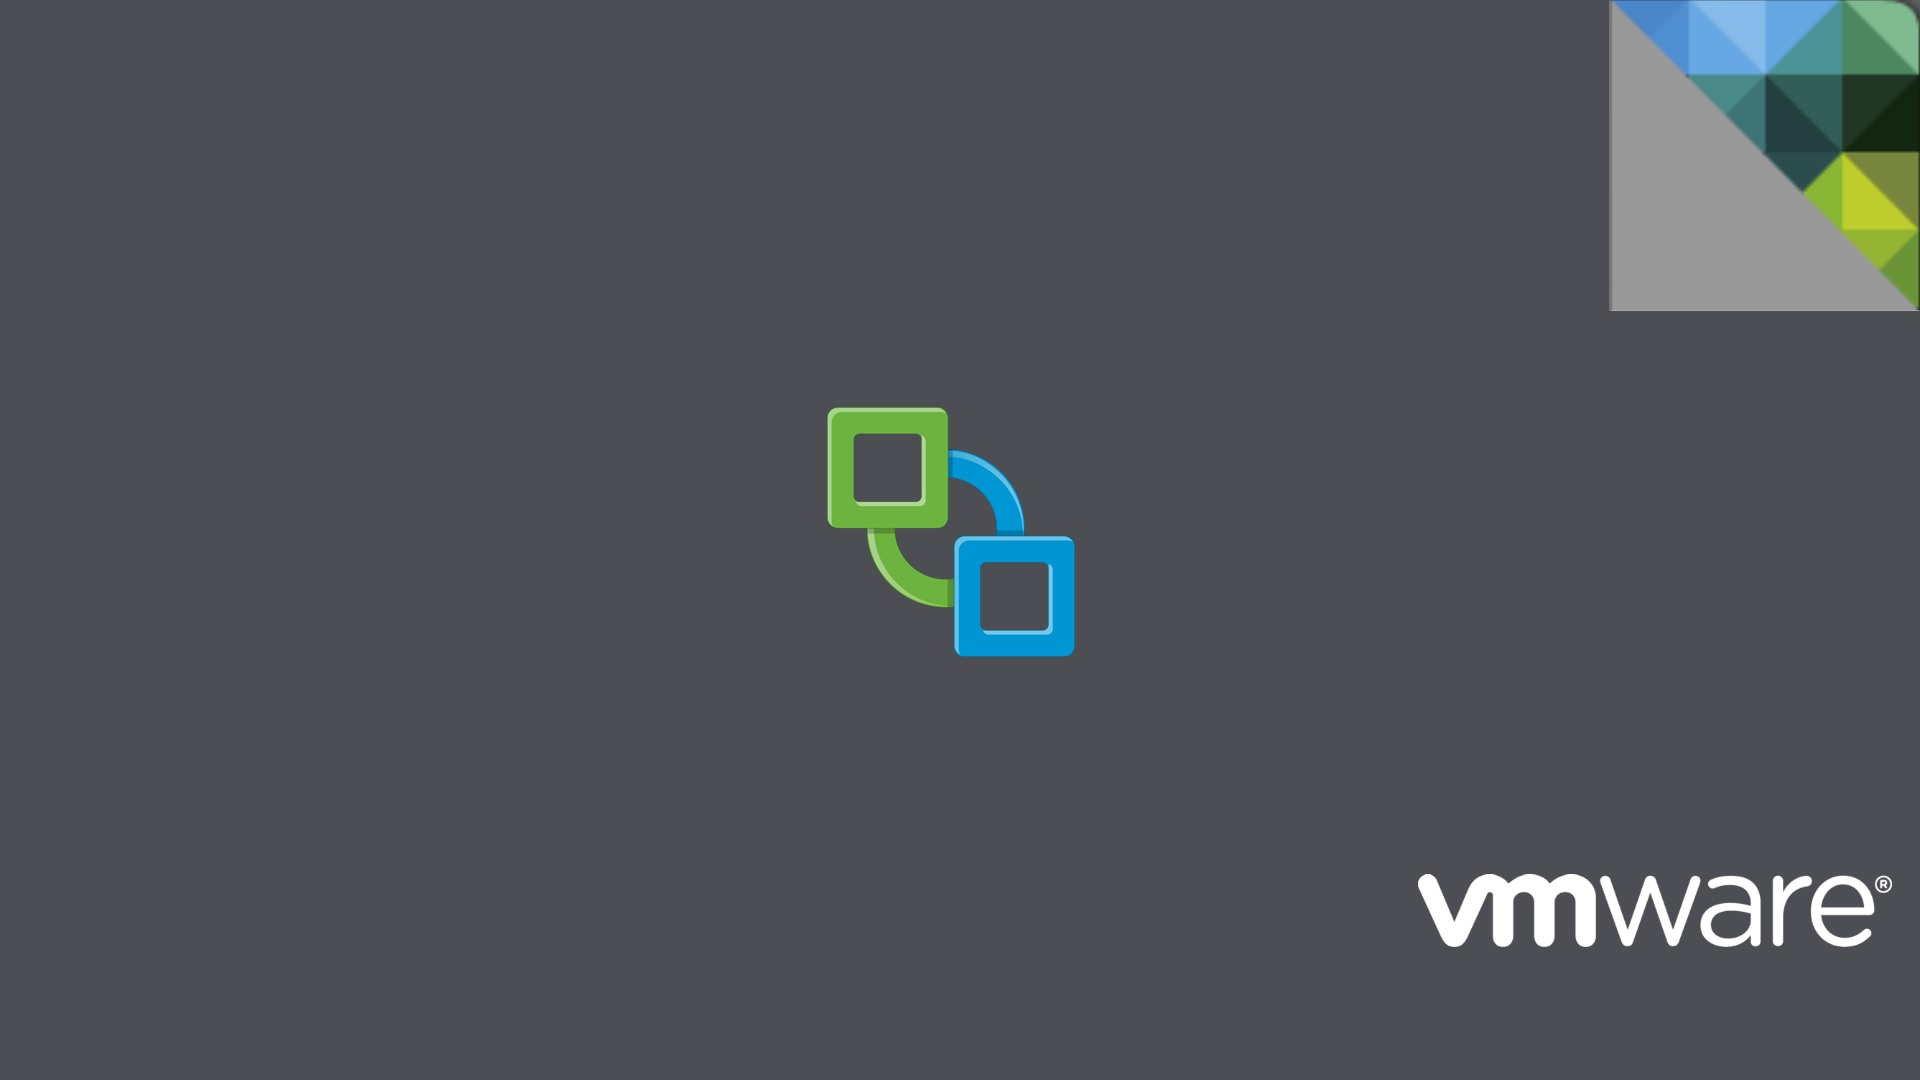 vmware_corner_peel_wallpaper_view